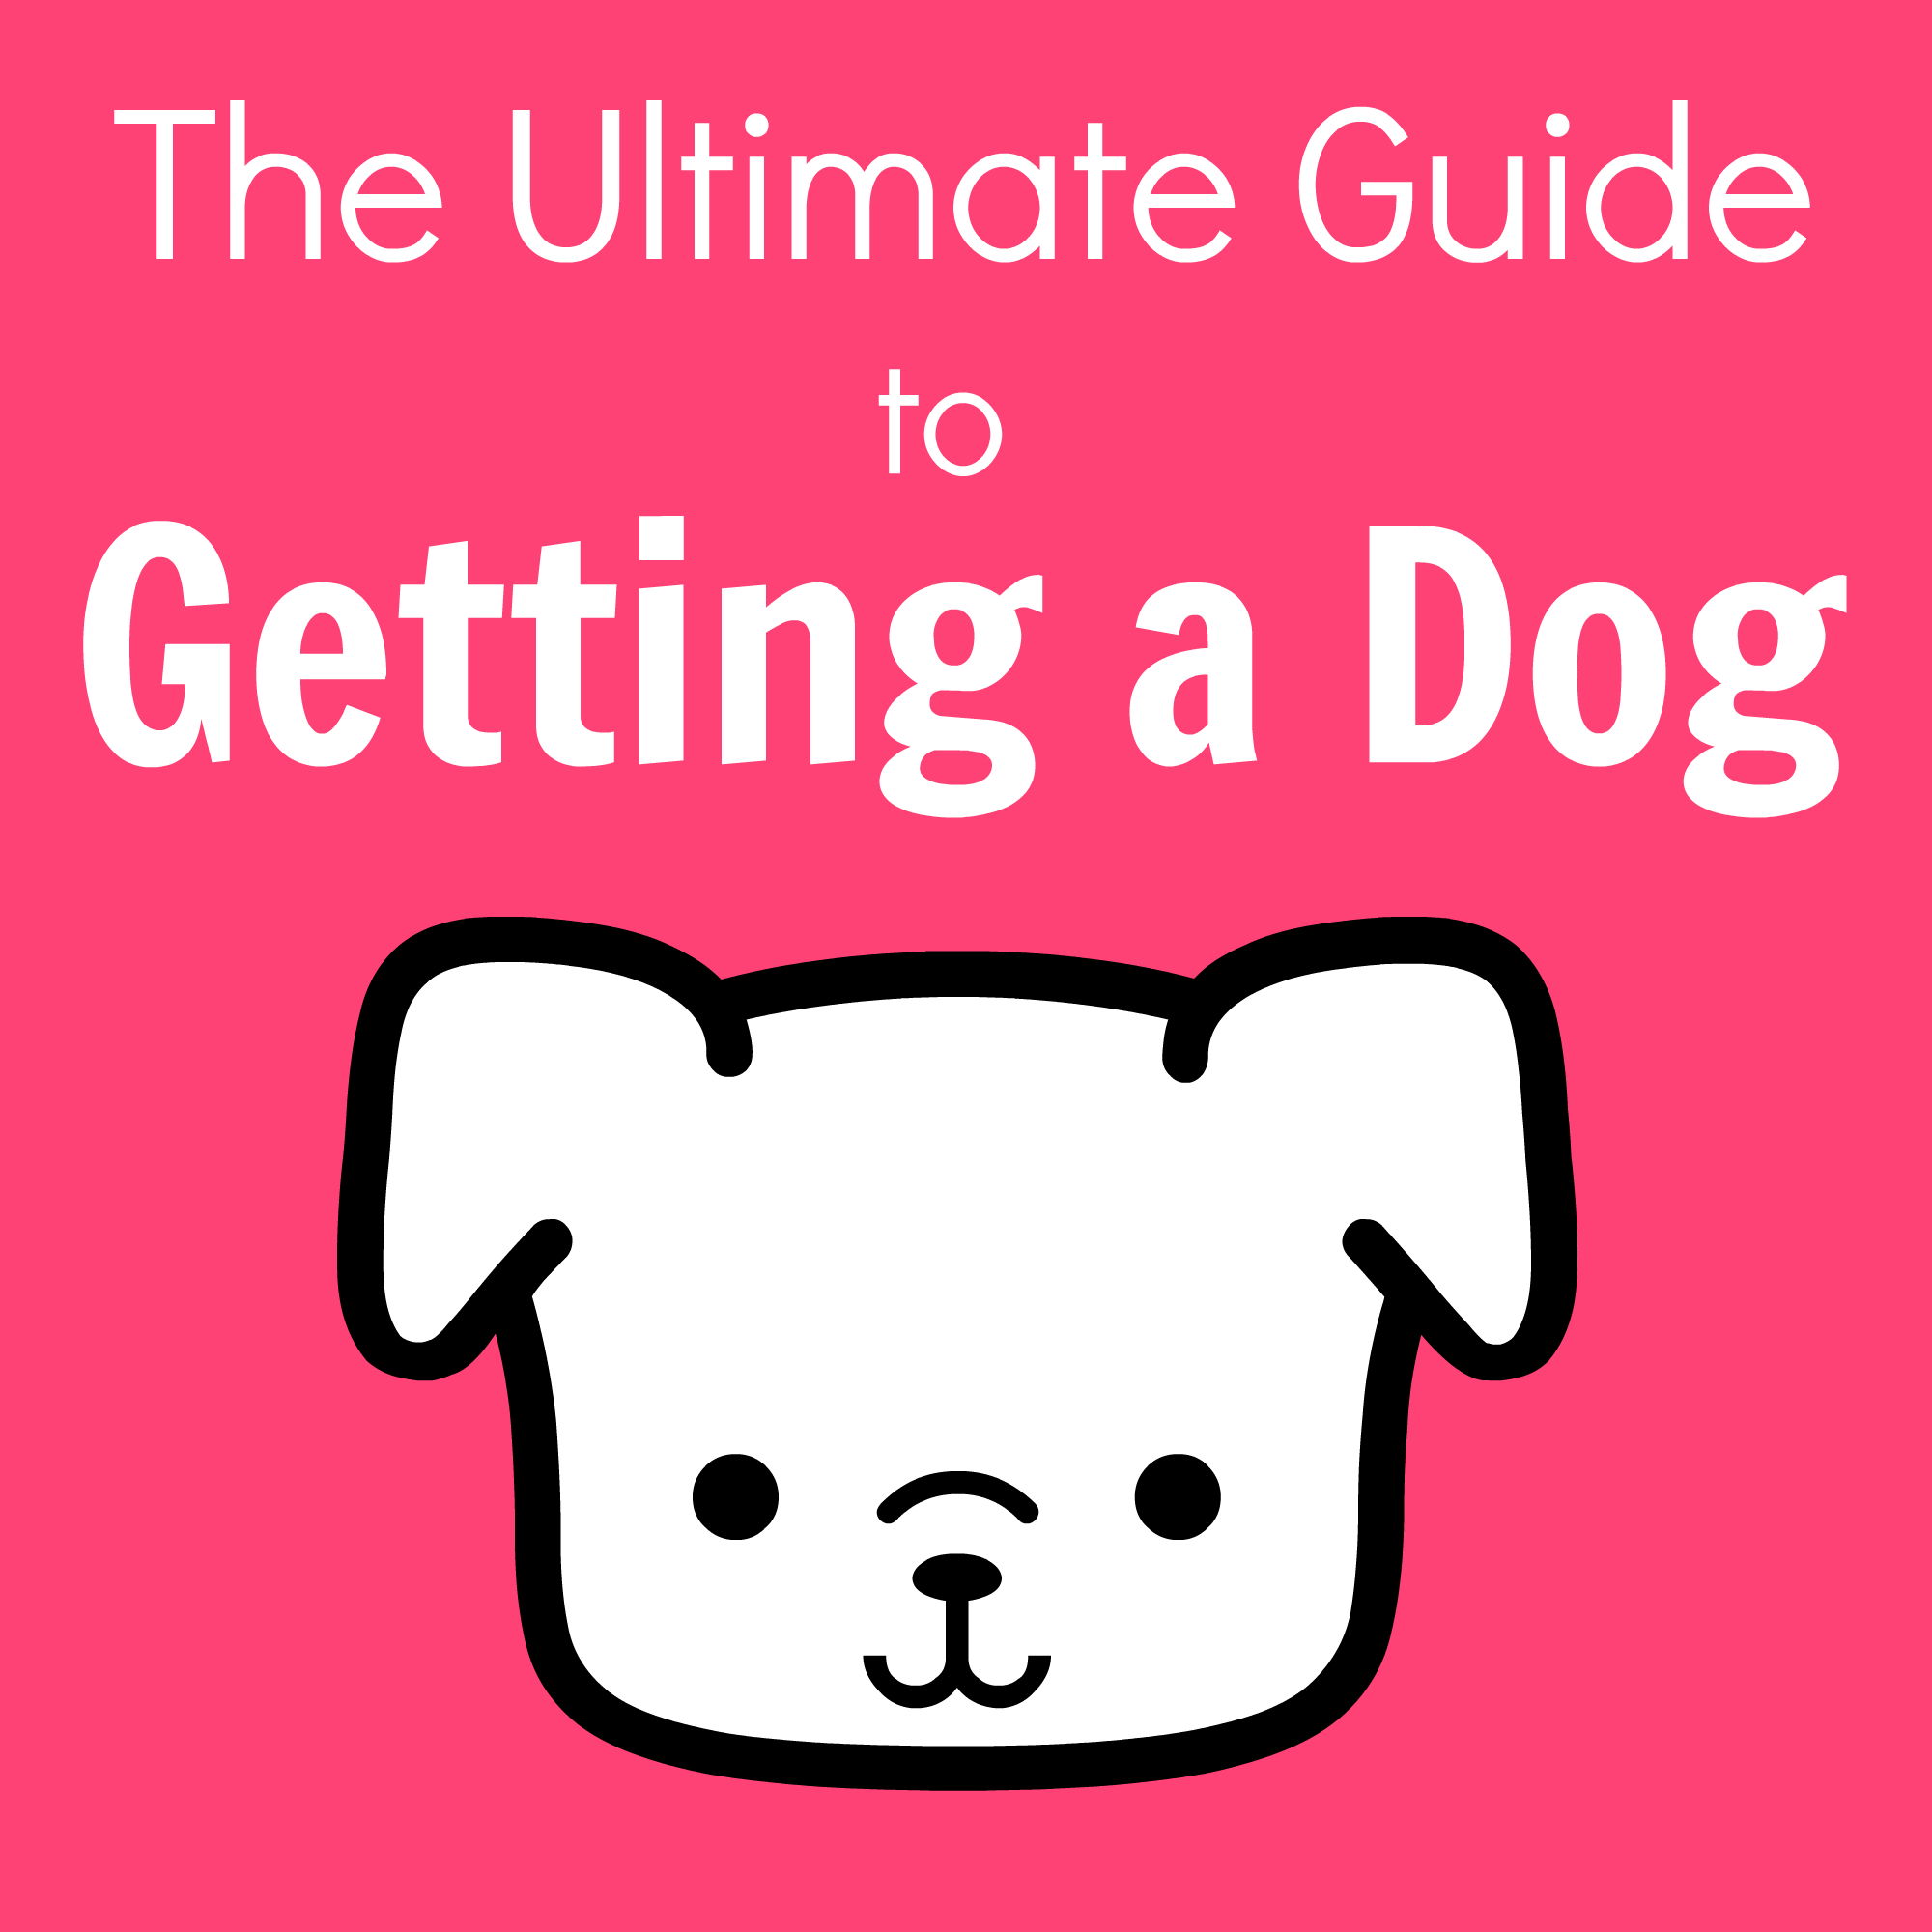 The Ultimate Guide to Getting a Dog